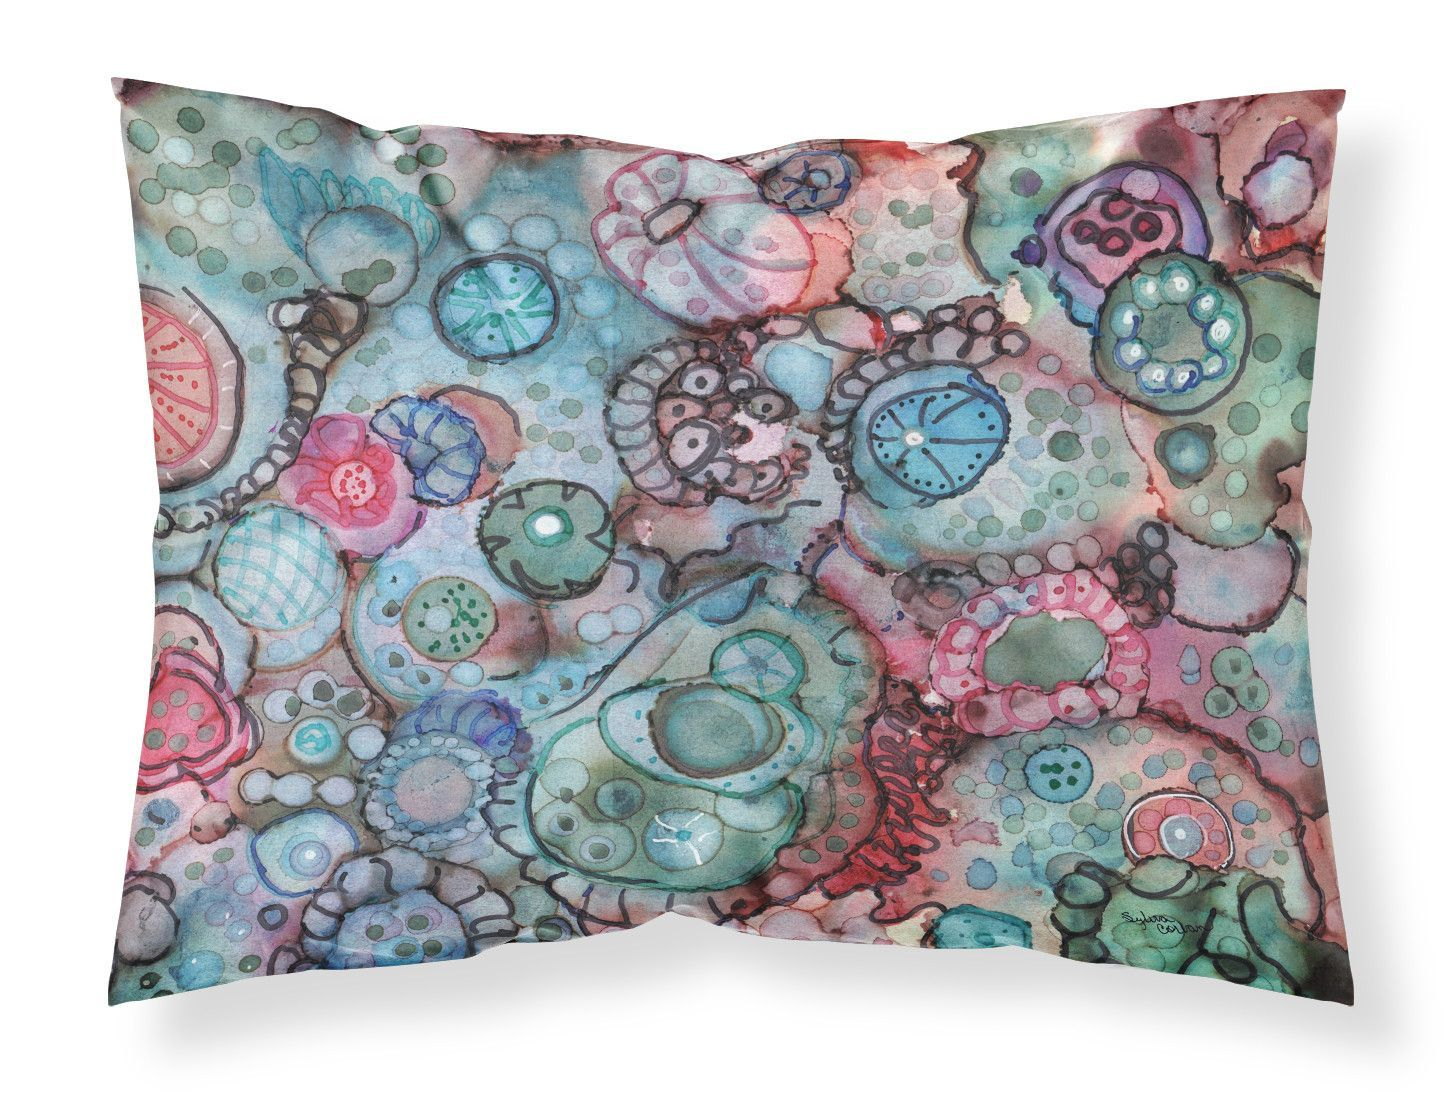 Abstract in Reds and Blues Fabric Standard Pillowcase 8982PILLOWCASE